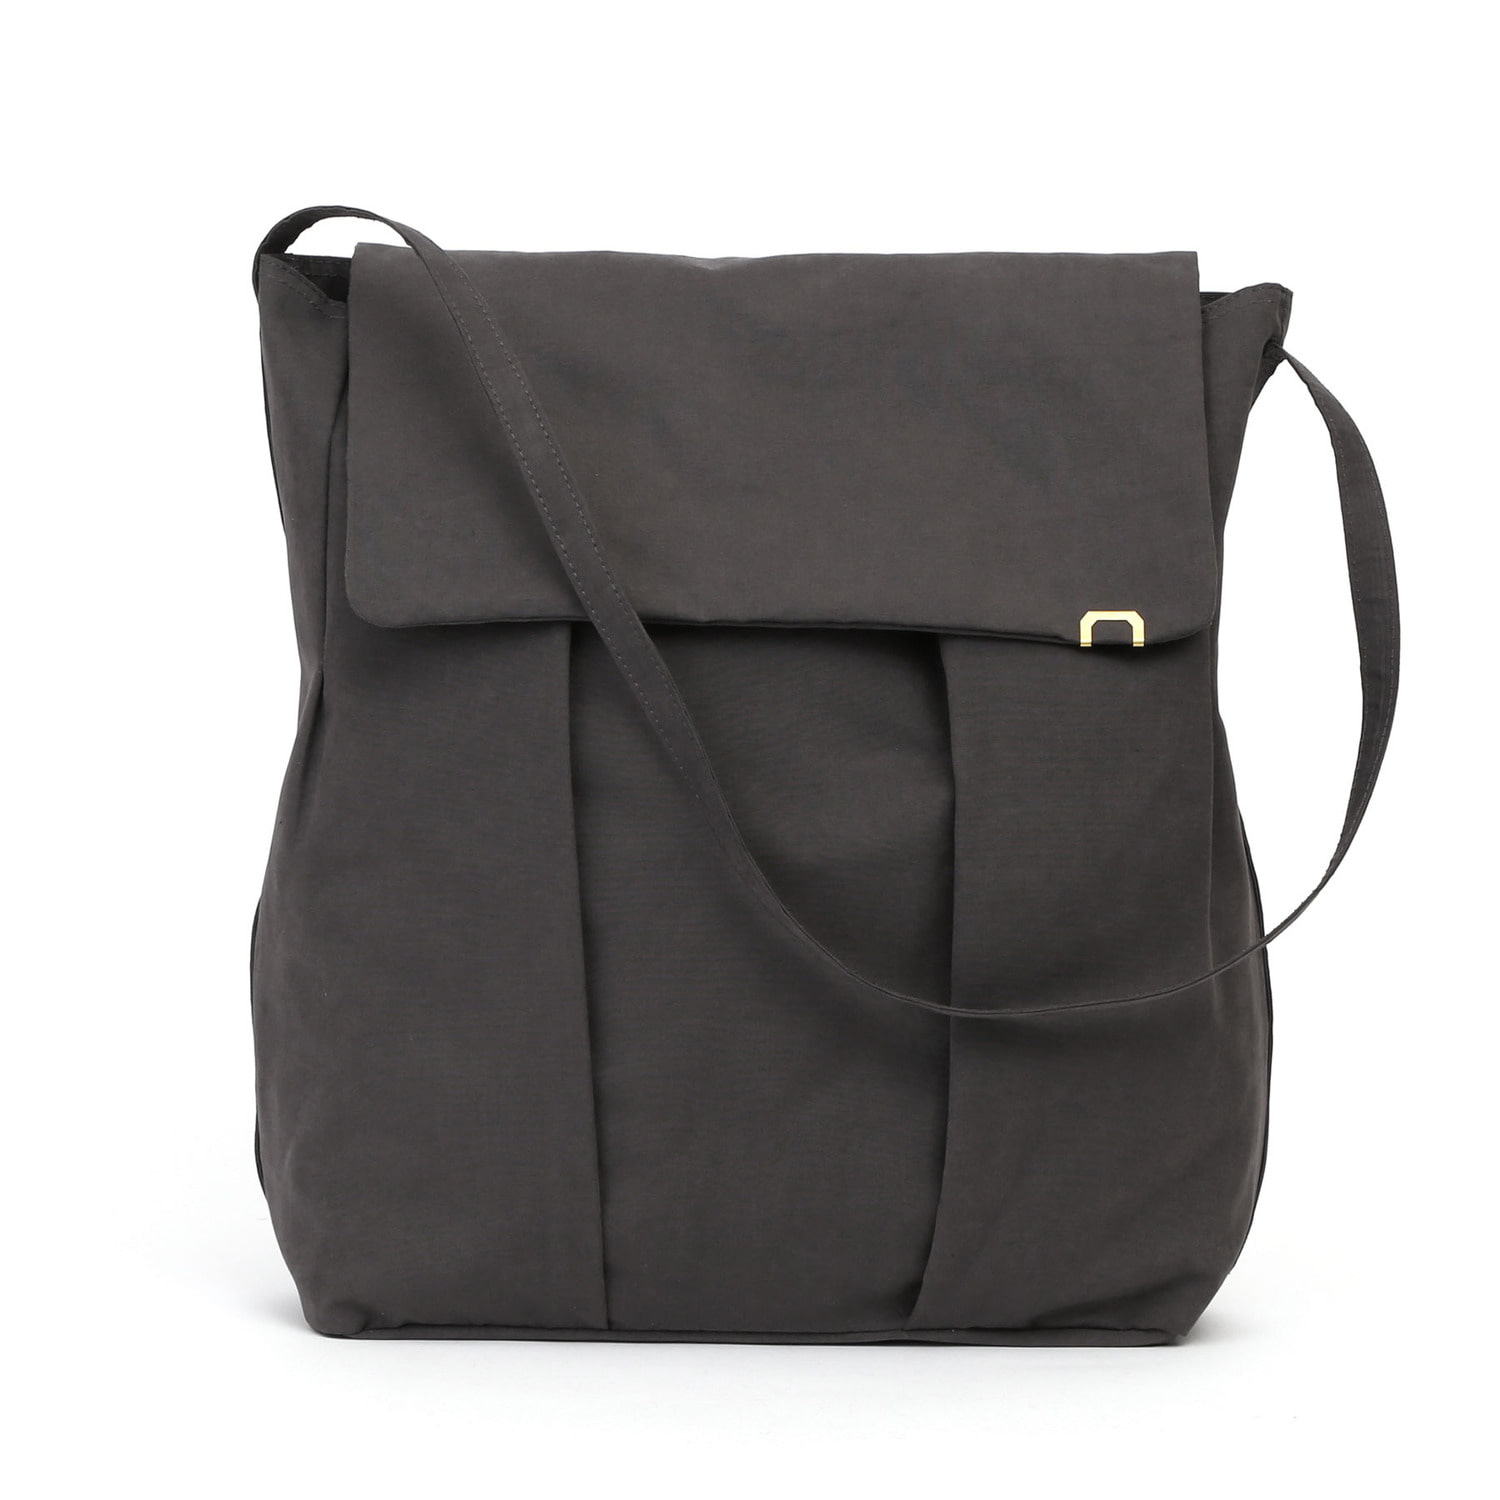 LADDER BAG / WRINKLE / NPC / DAWN CHARCOAL